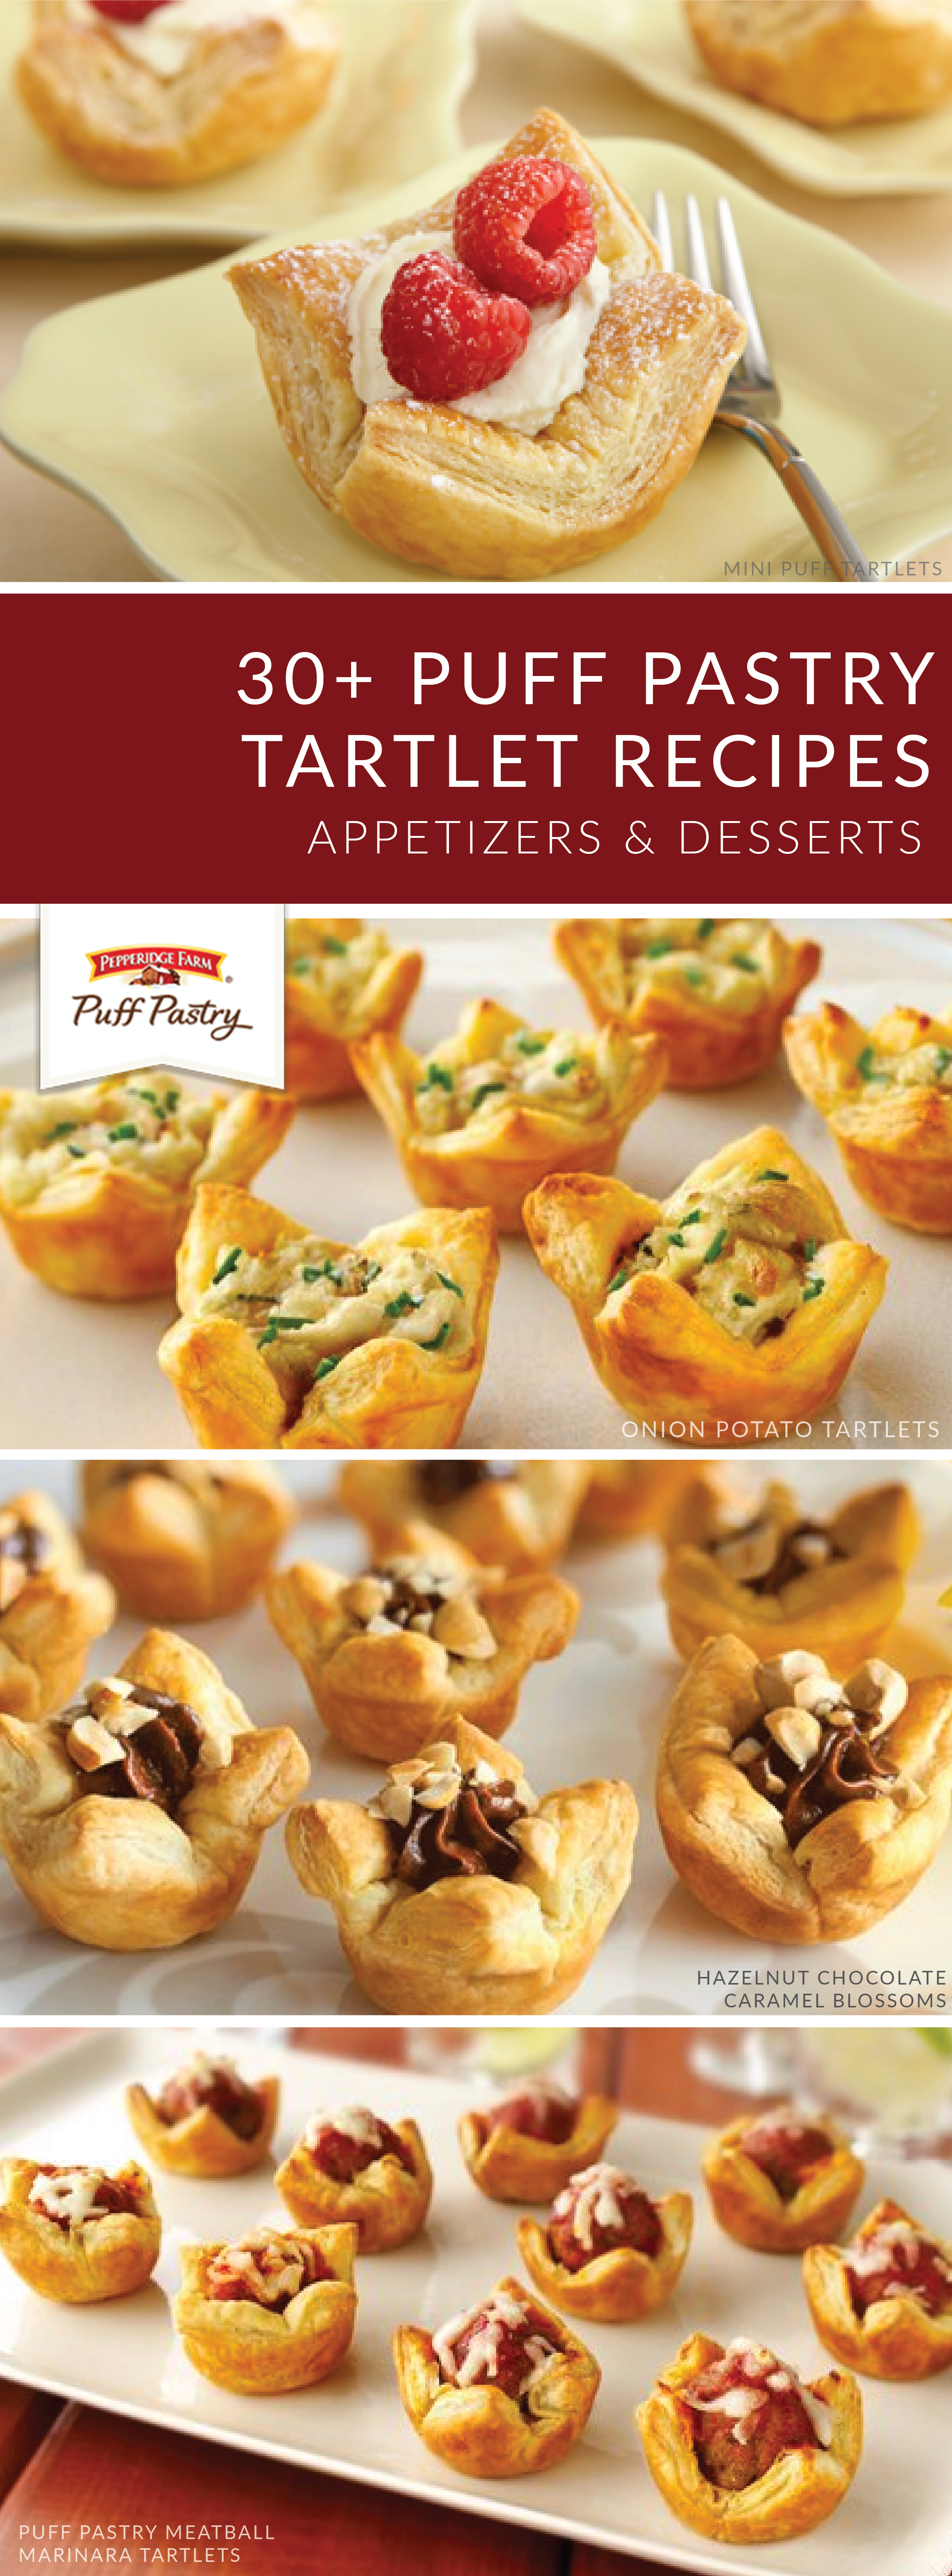 20 Muffin Tin Puff Pastry Recipes Ideas Puff Pastry Recipes Recipes Puff Pastry